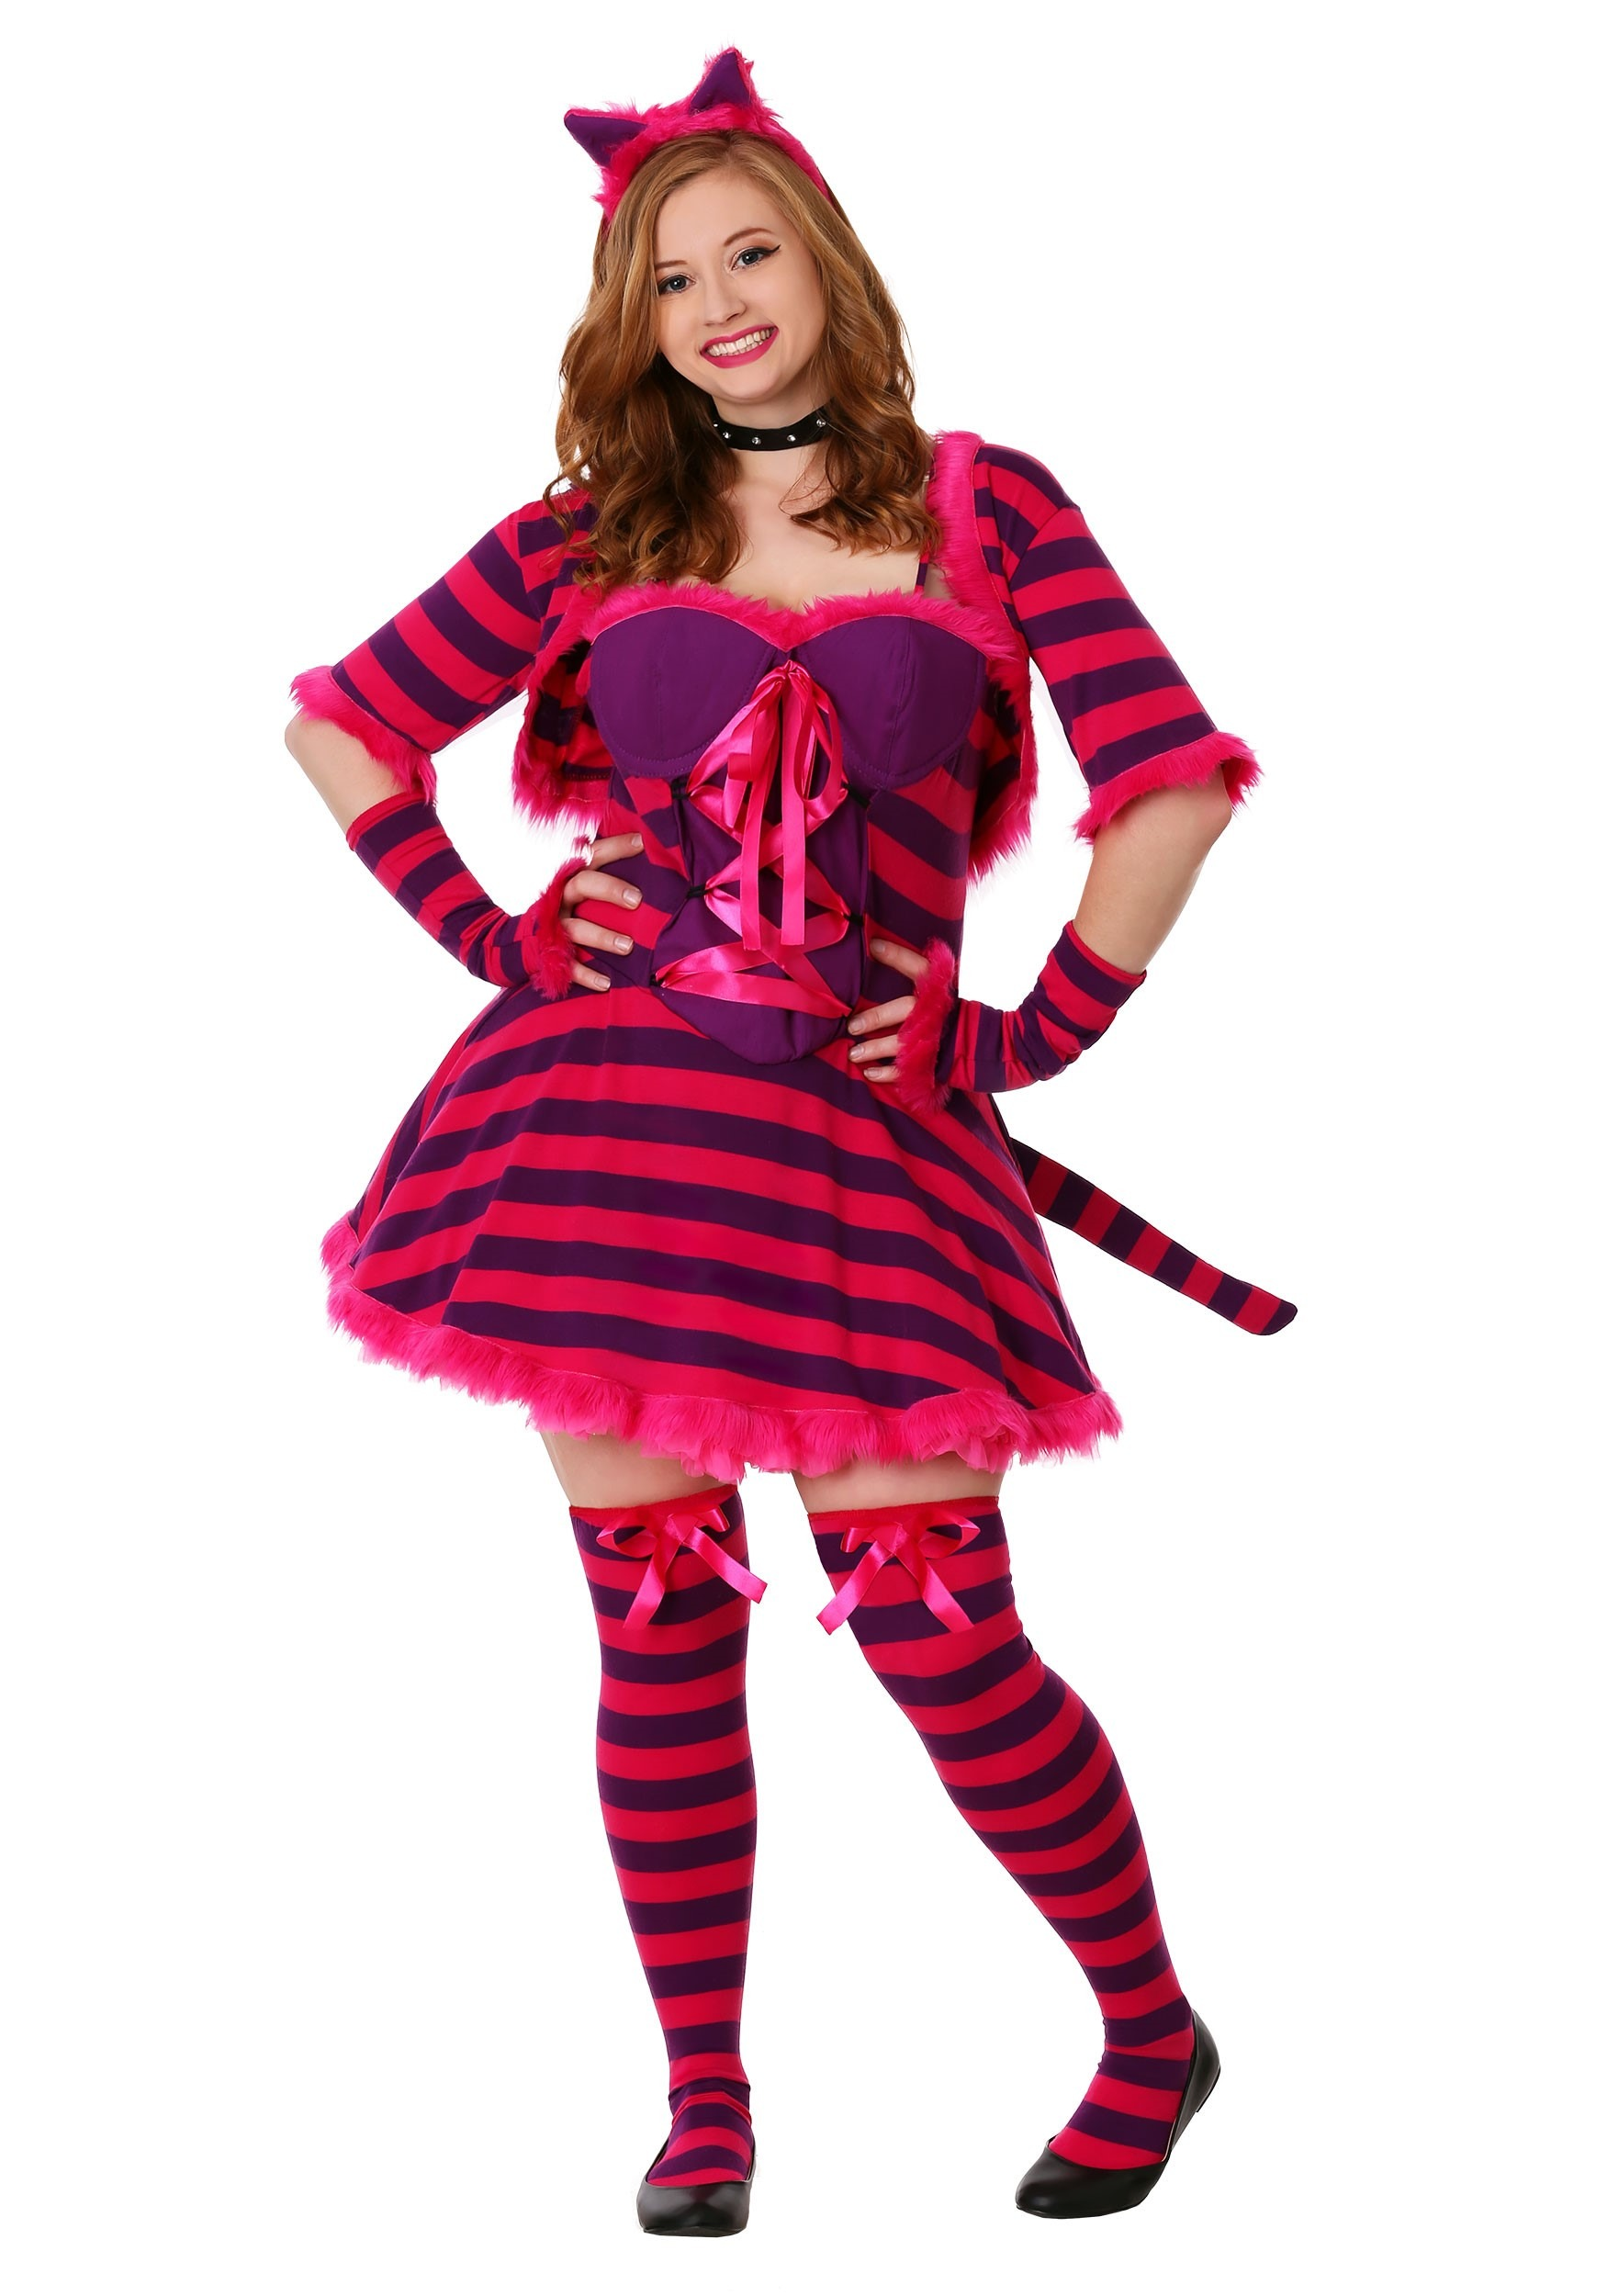 Plus Size Costumes - Sexy, Mens, Womens Plus Size Halloween Costumes